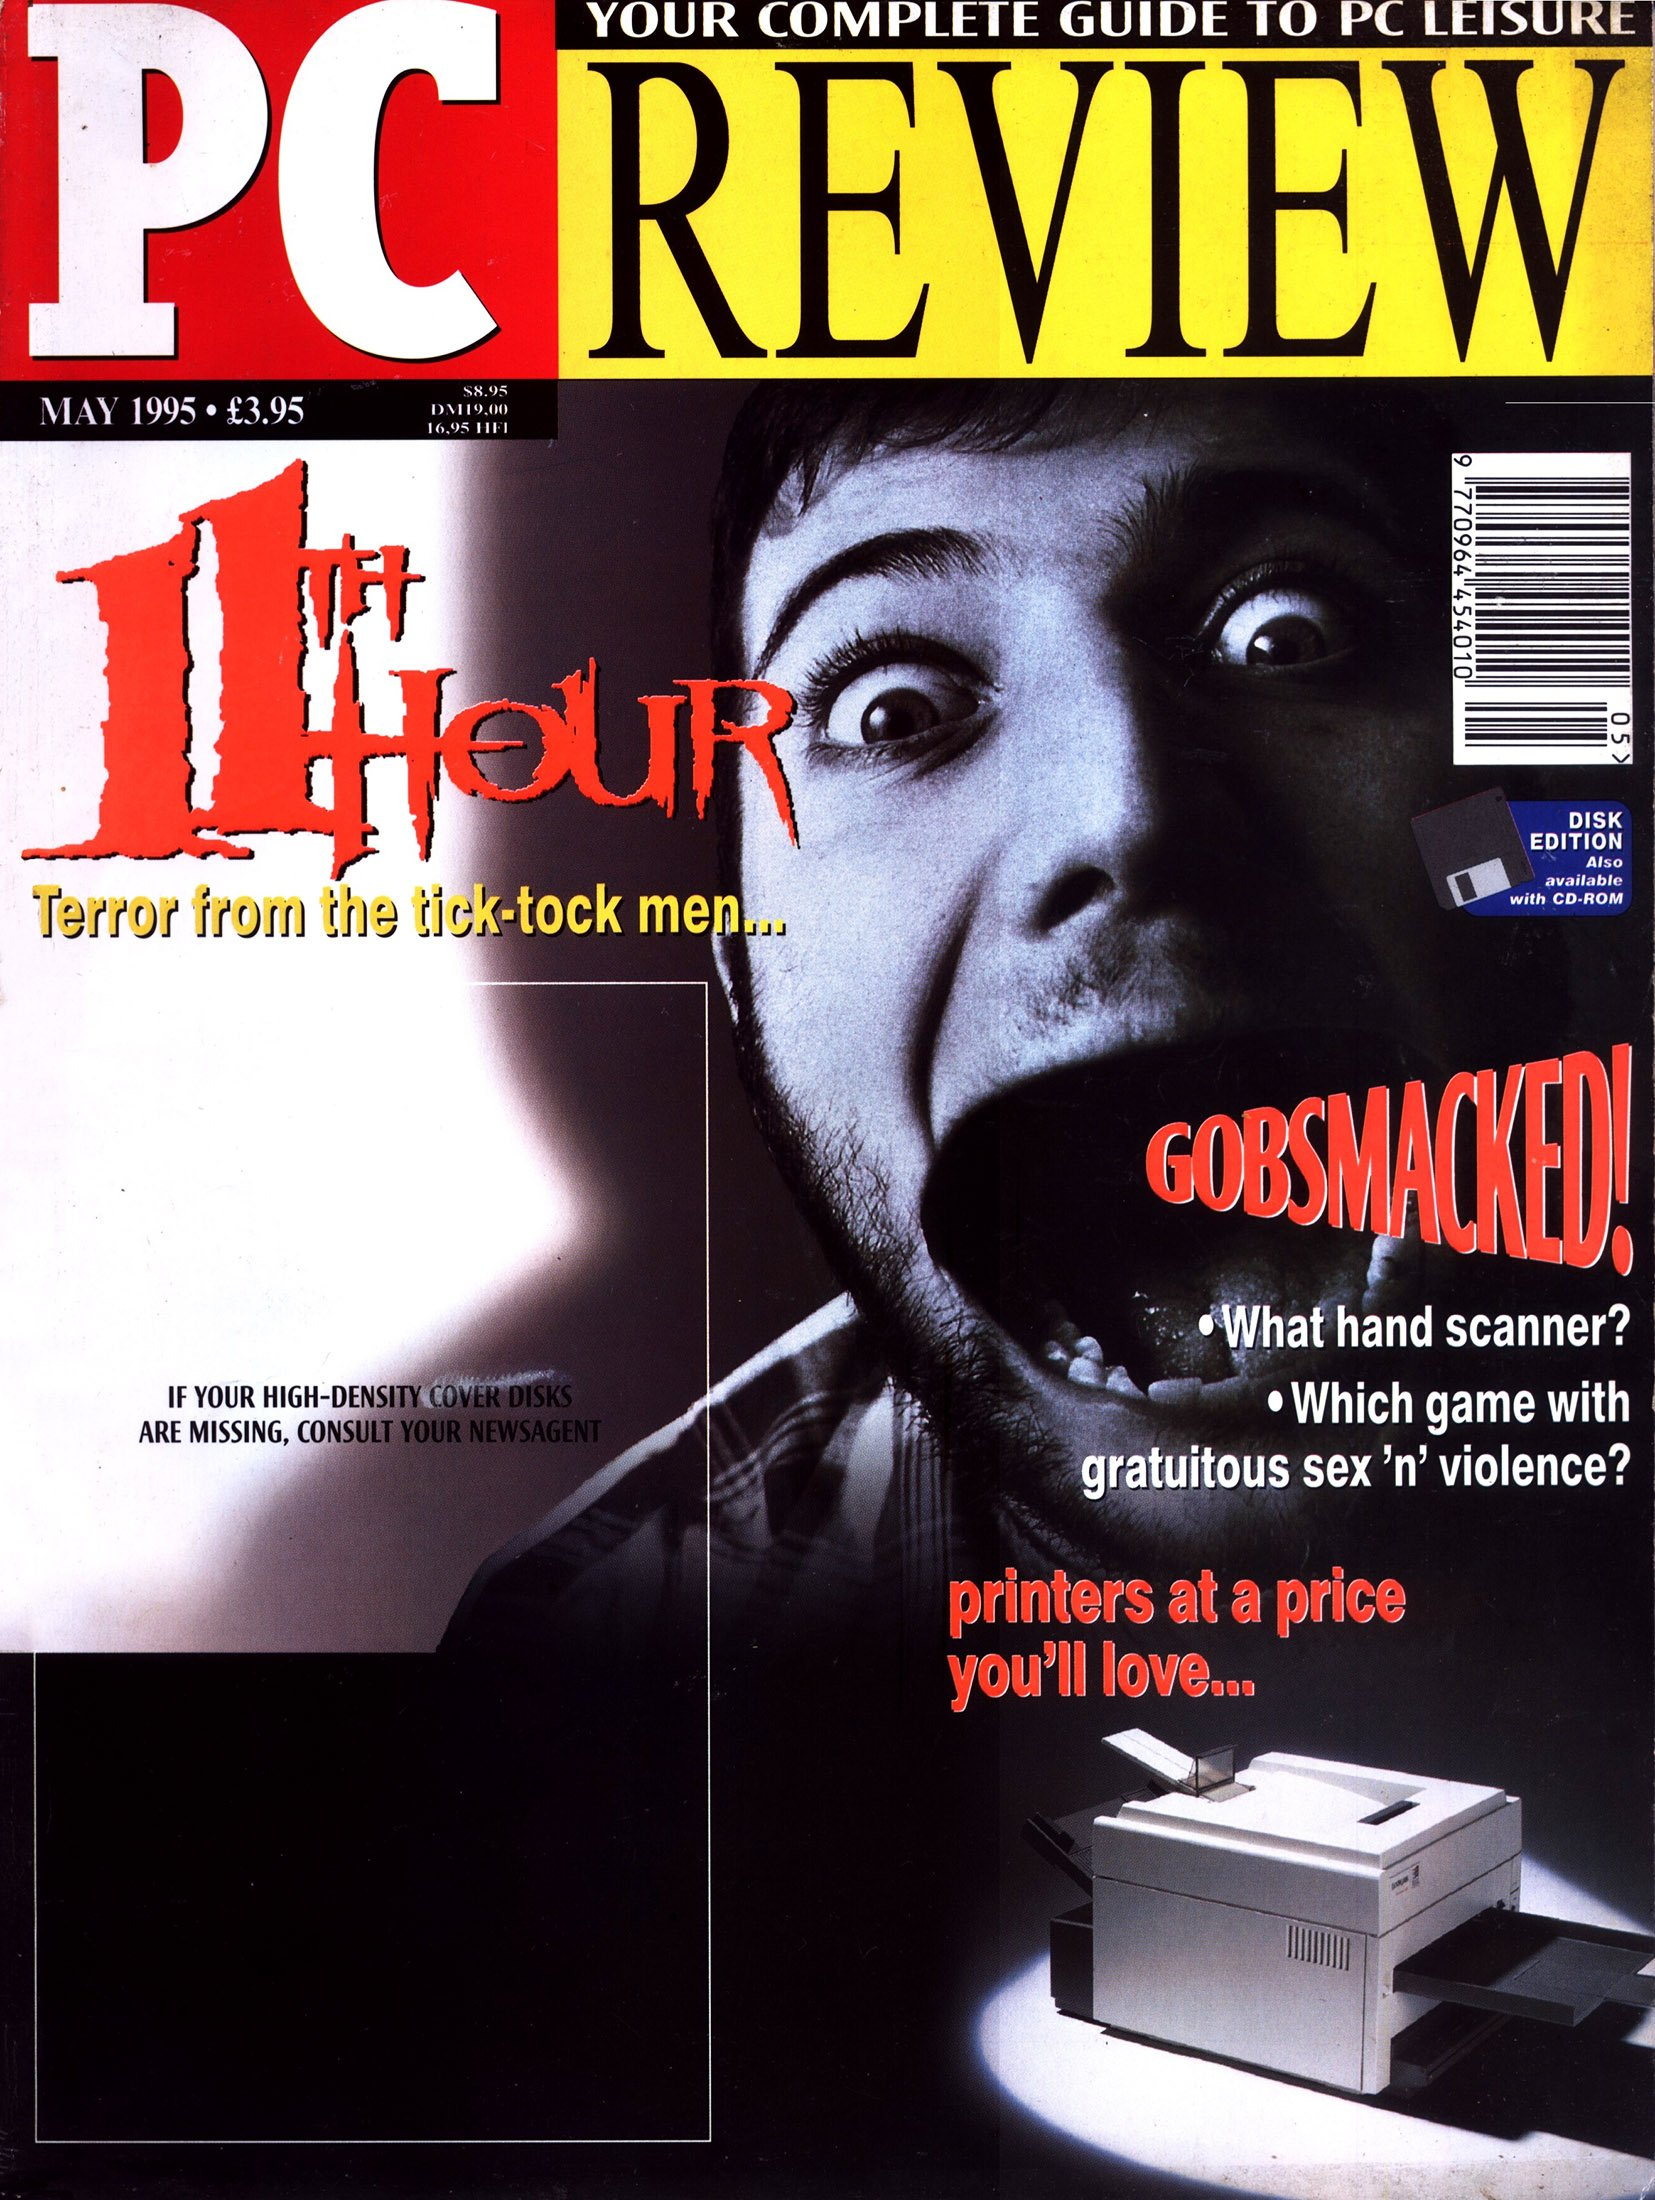 PC Review Issue 43 (May 1995)